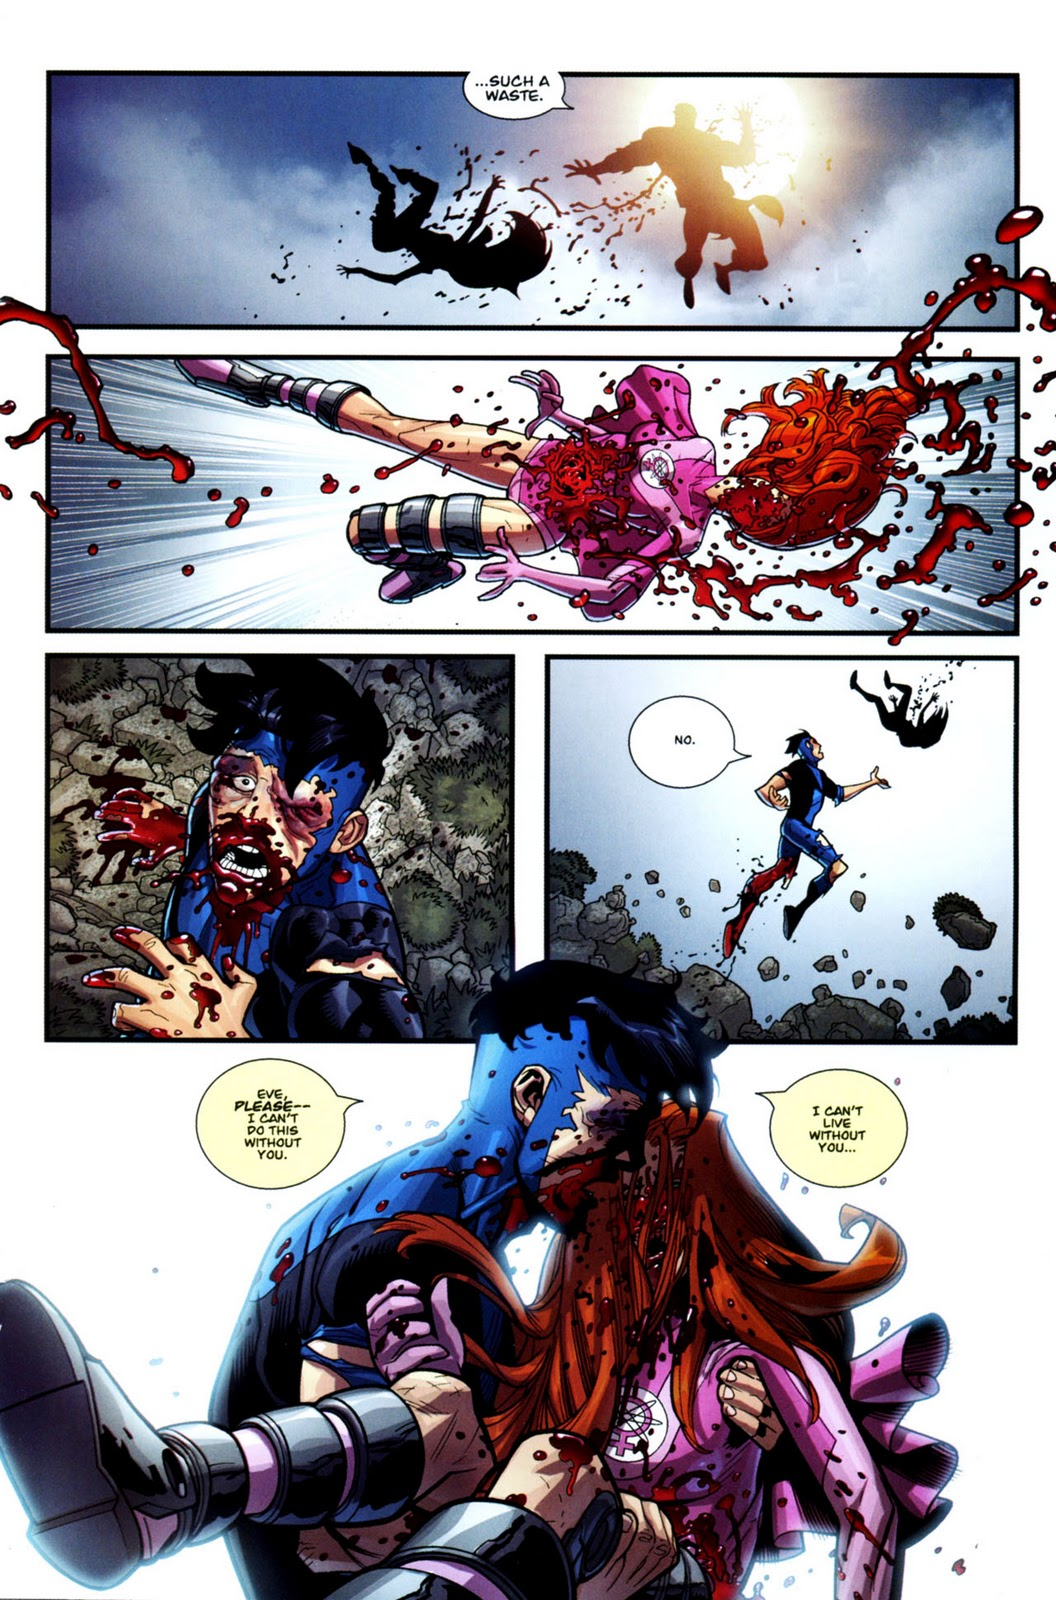 i u0026 39 d never seen any violence in comic book before that made